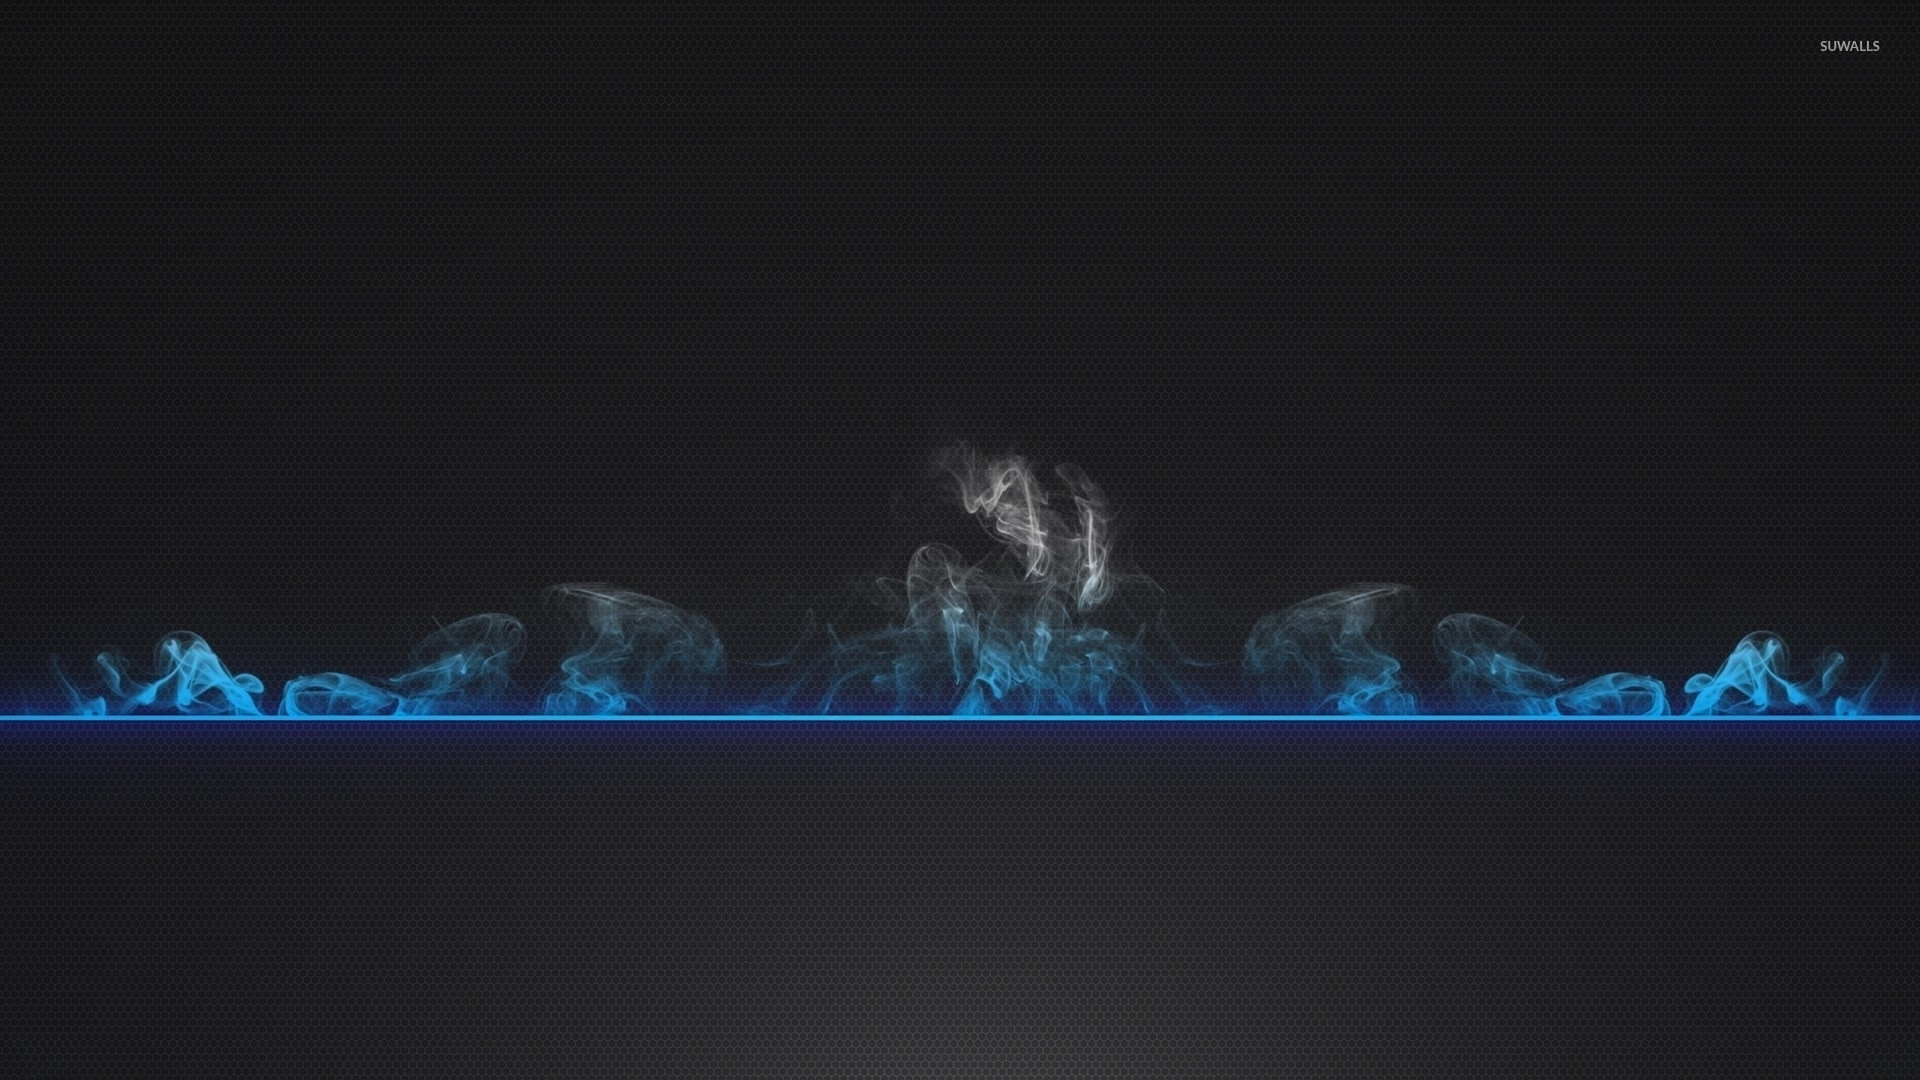 smoke rising from the blue line wallpaper - digital art wallpapers